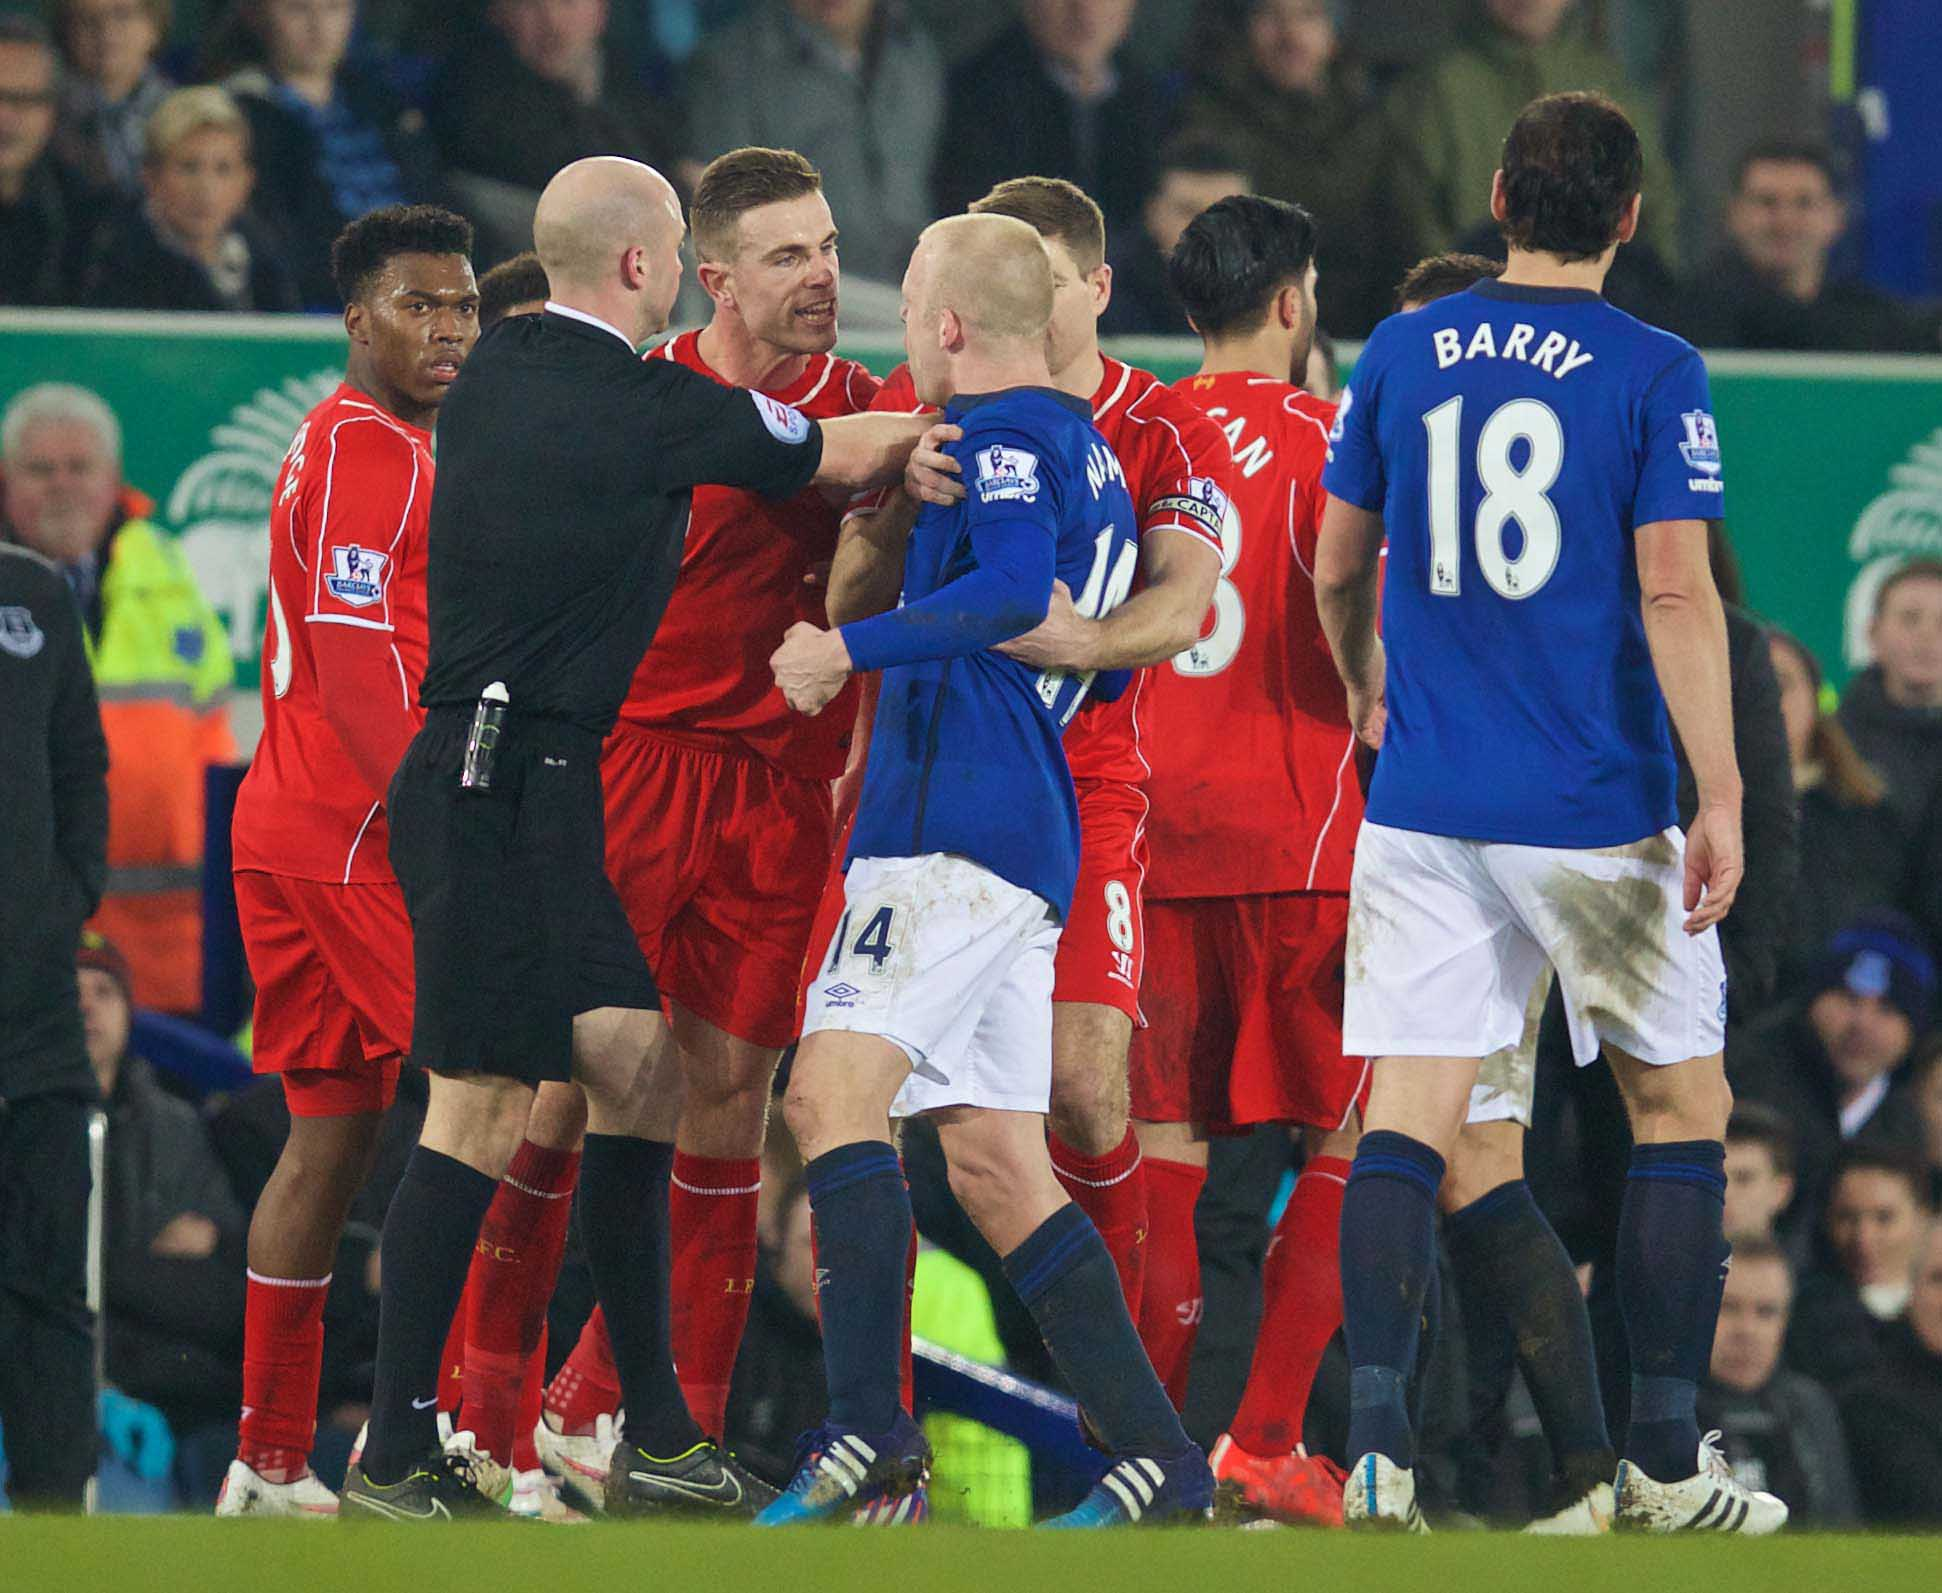 MATCH REVIEW: EVERTON 0 LIVERPOOL 0